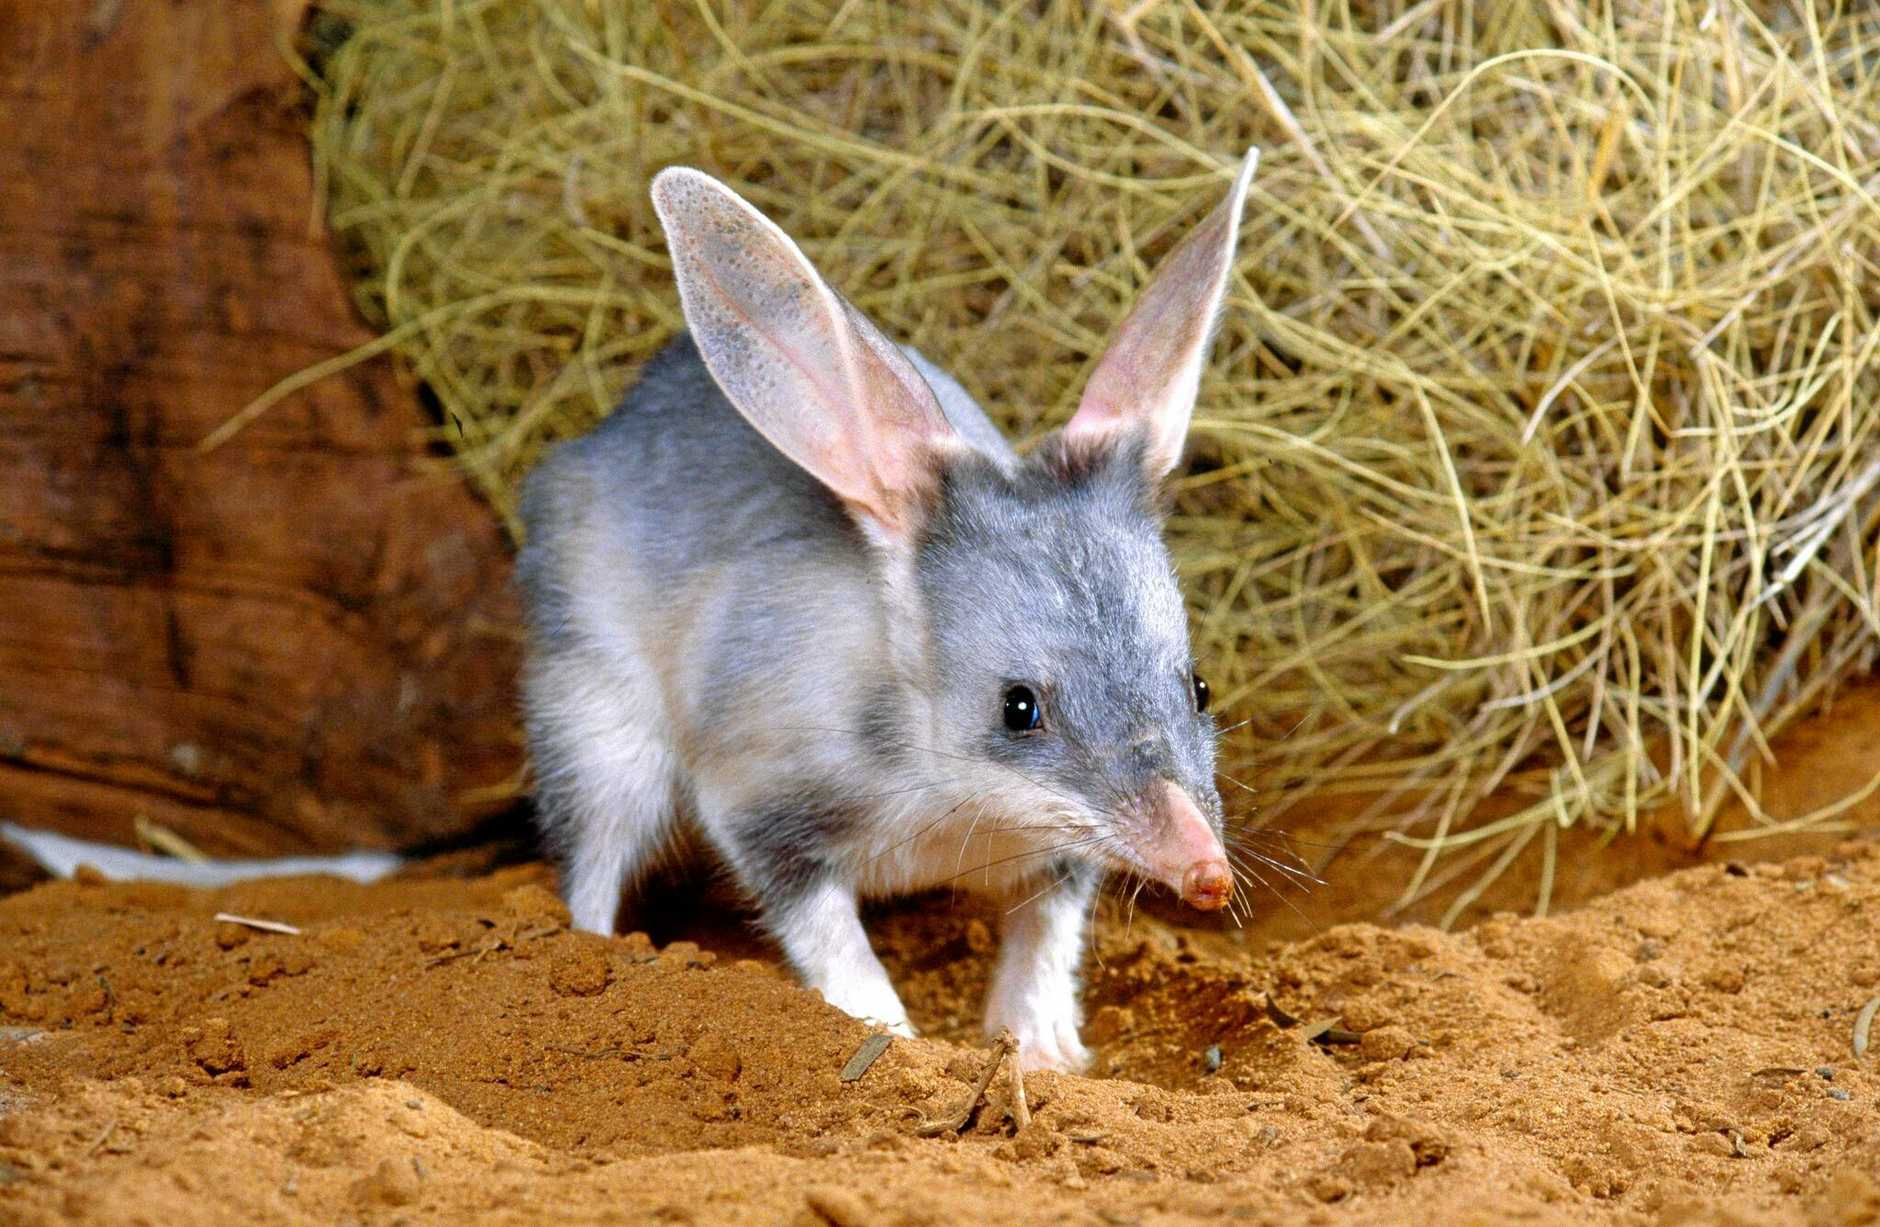 Buy a chocolate Bilby instead of a bunny, which will support the campaigns to ensure the bilbies survival for the future.